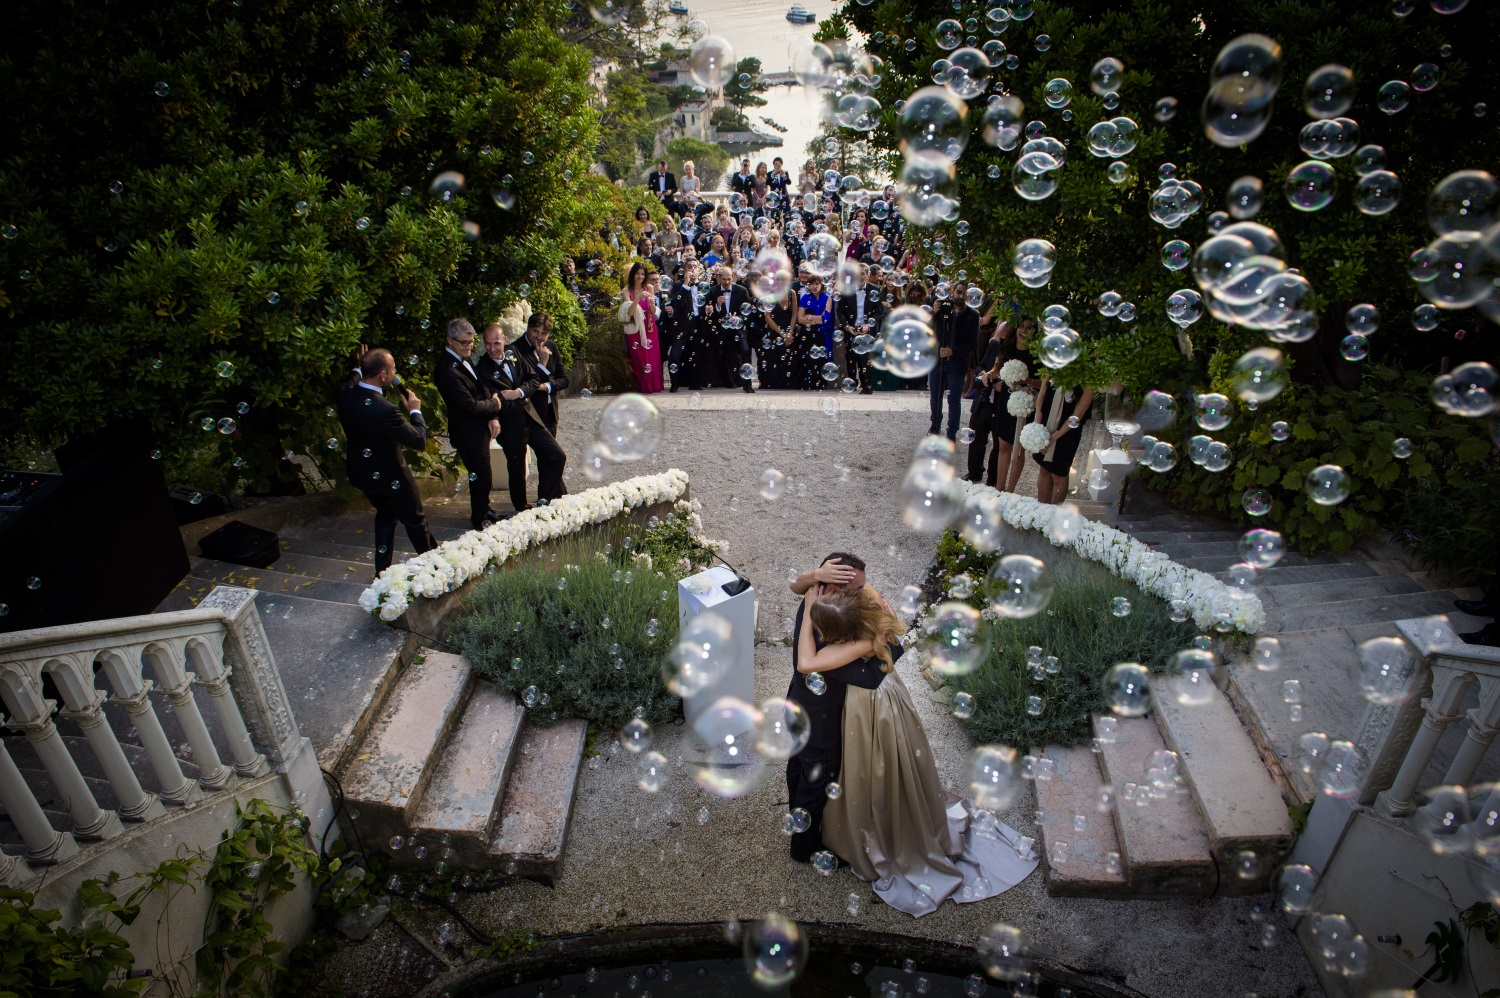 2-wedding-bubbles-giorgia-fantin-borghi-italy-france_1500